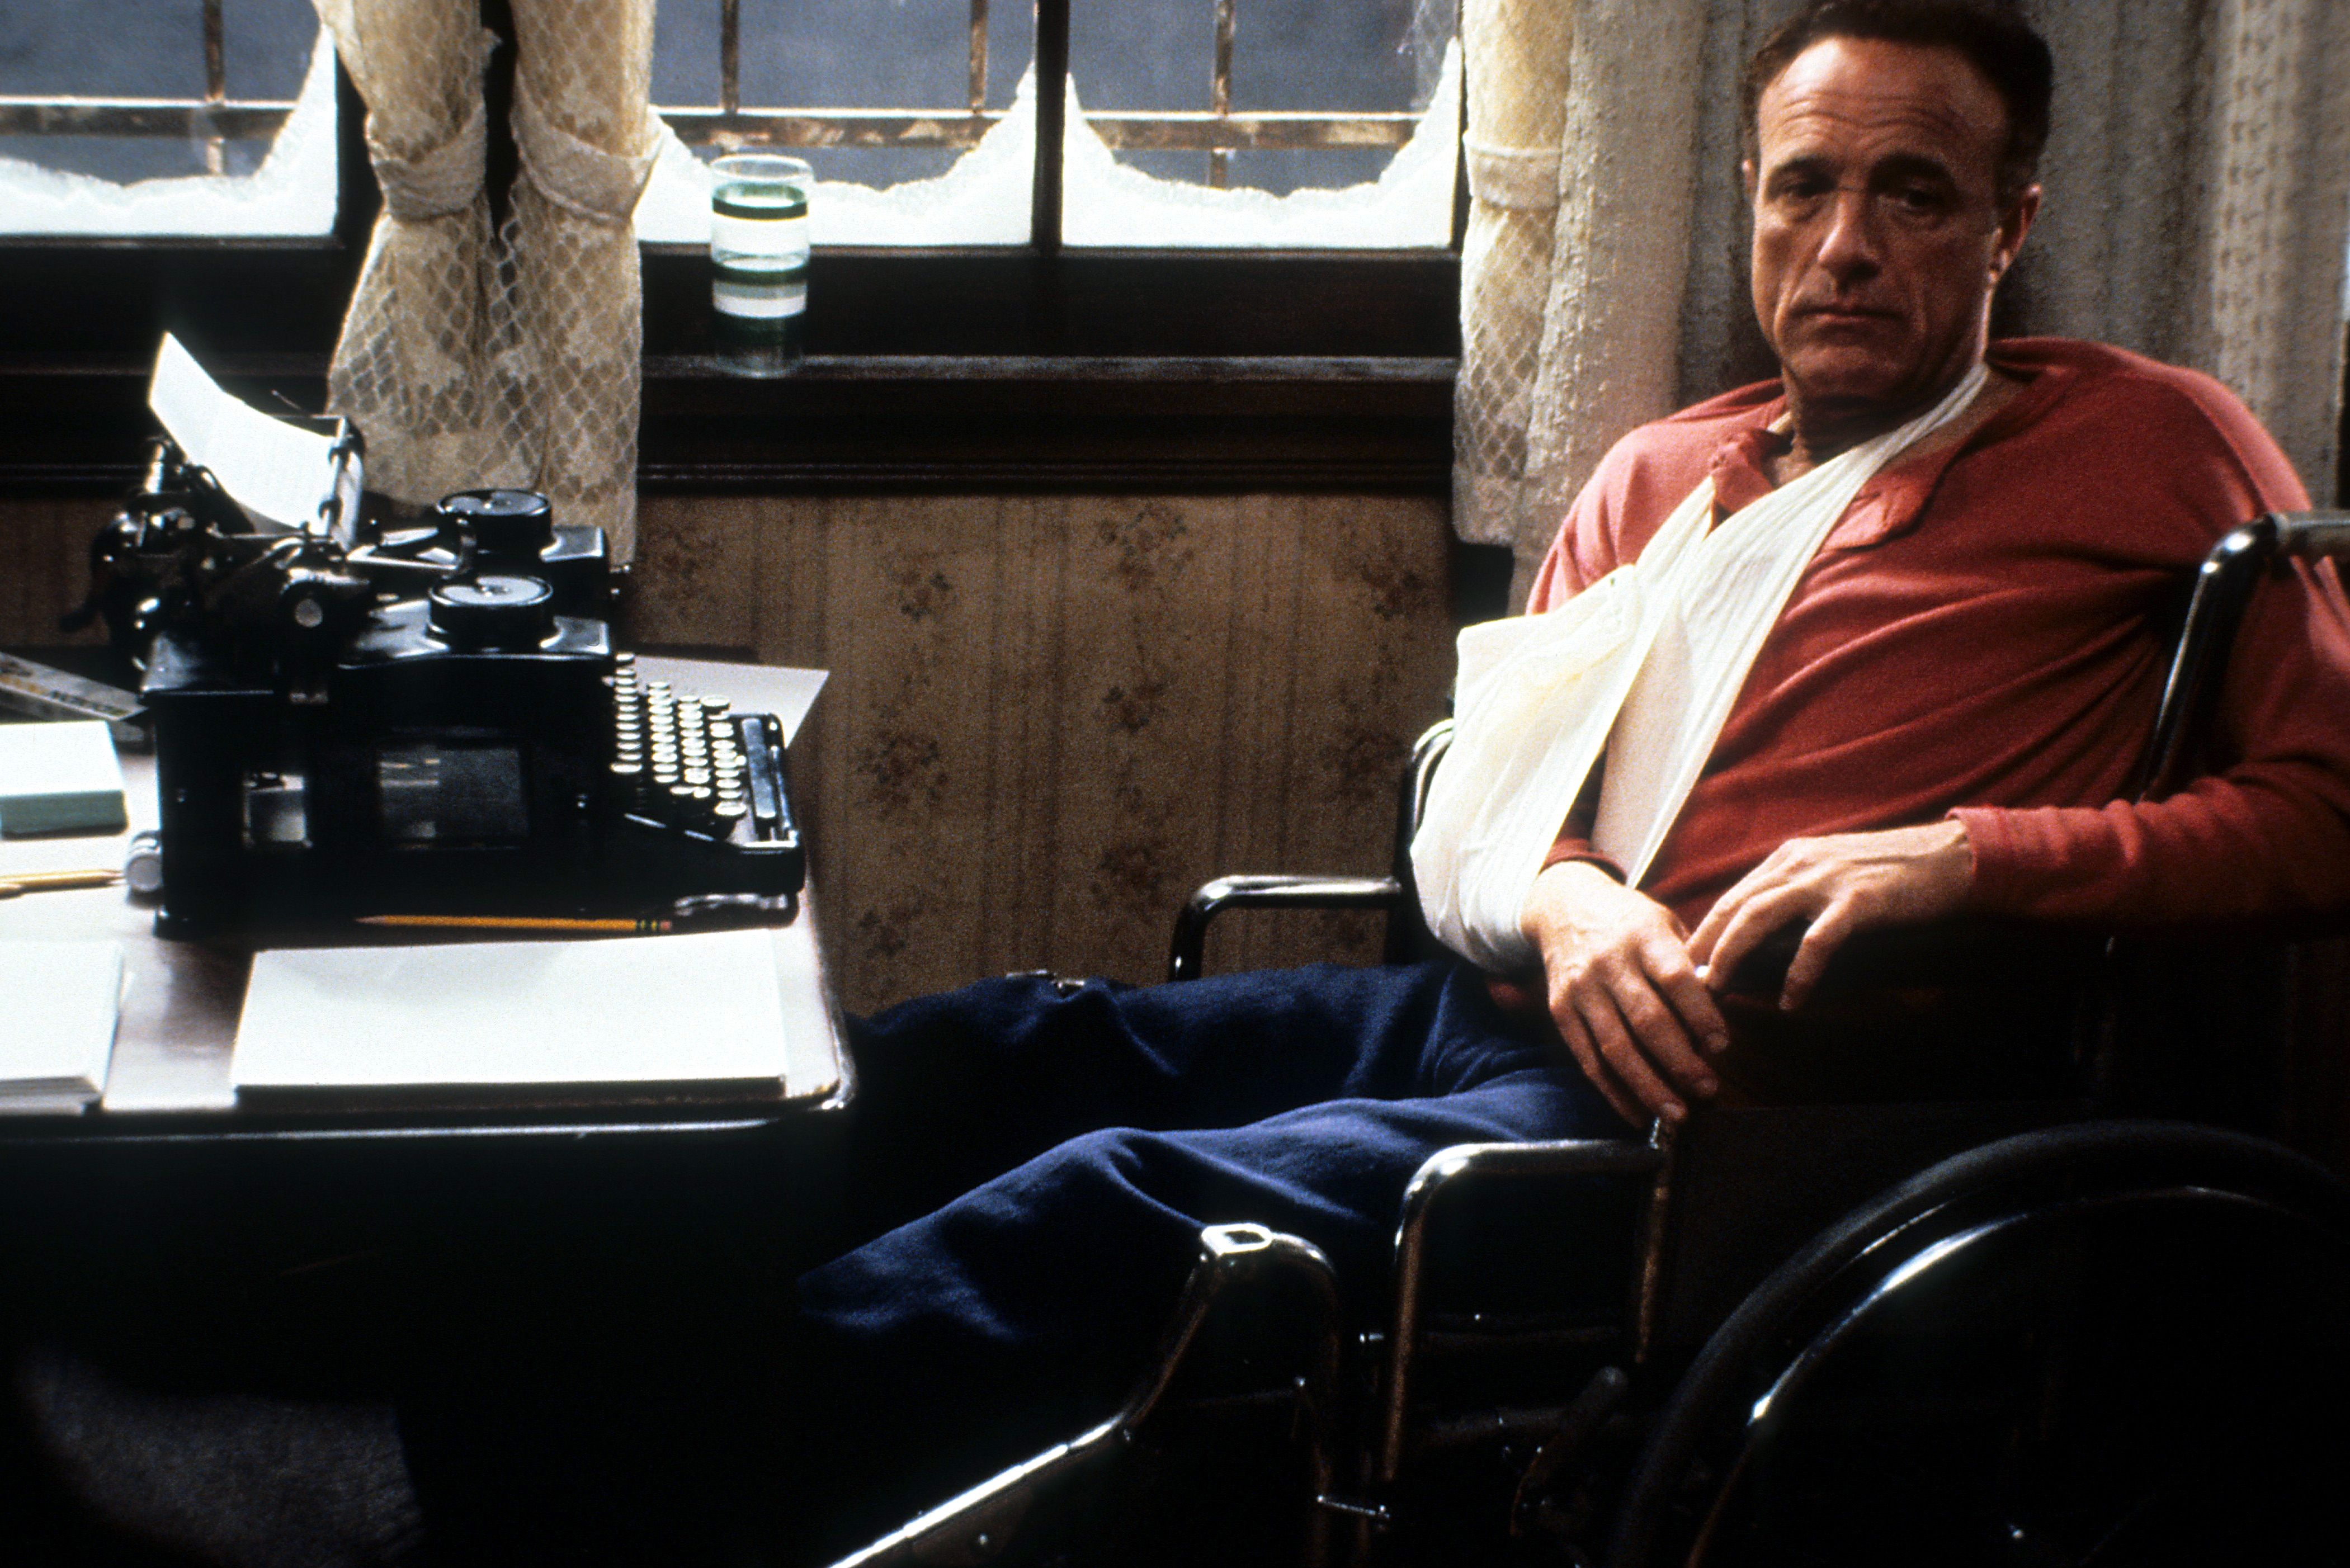 James Caan in a wheelchair in a scene from the film 'Misery' (1990)